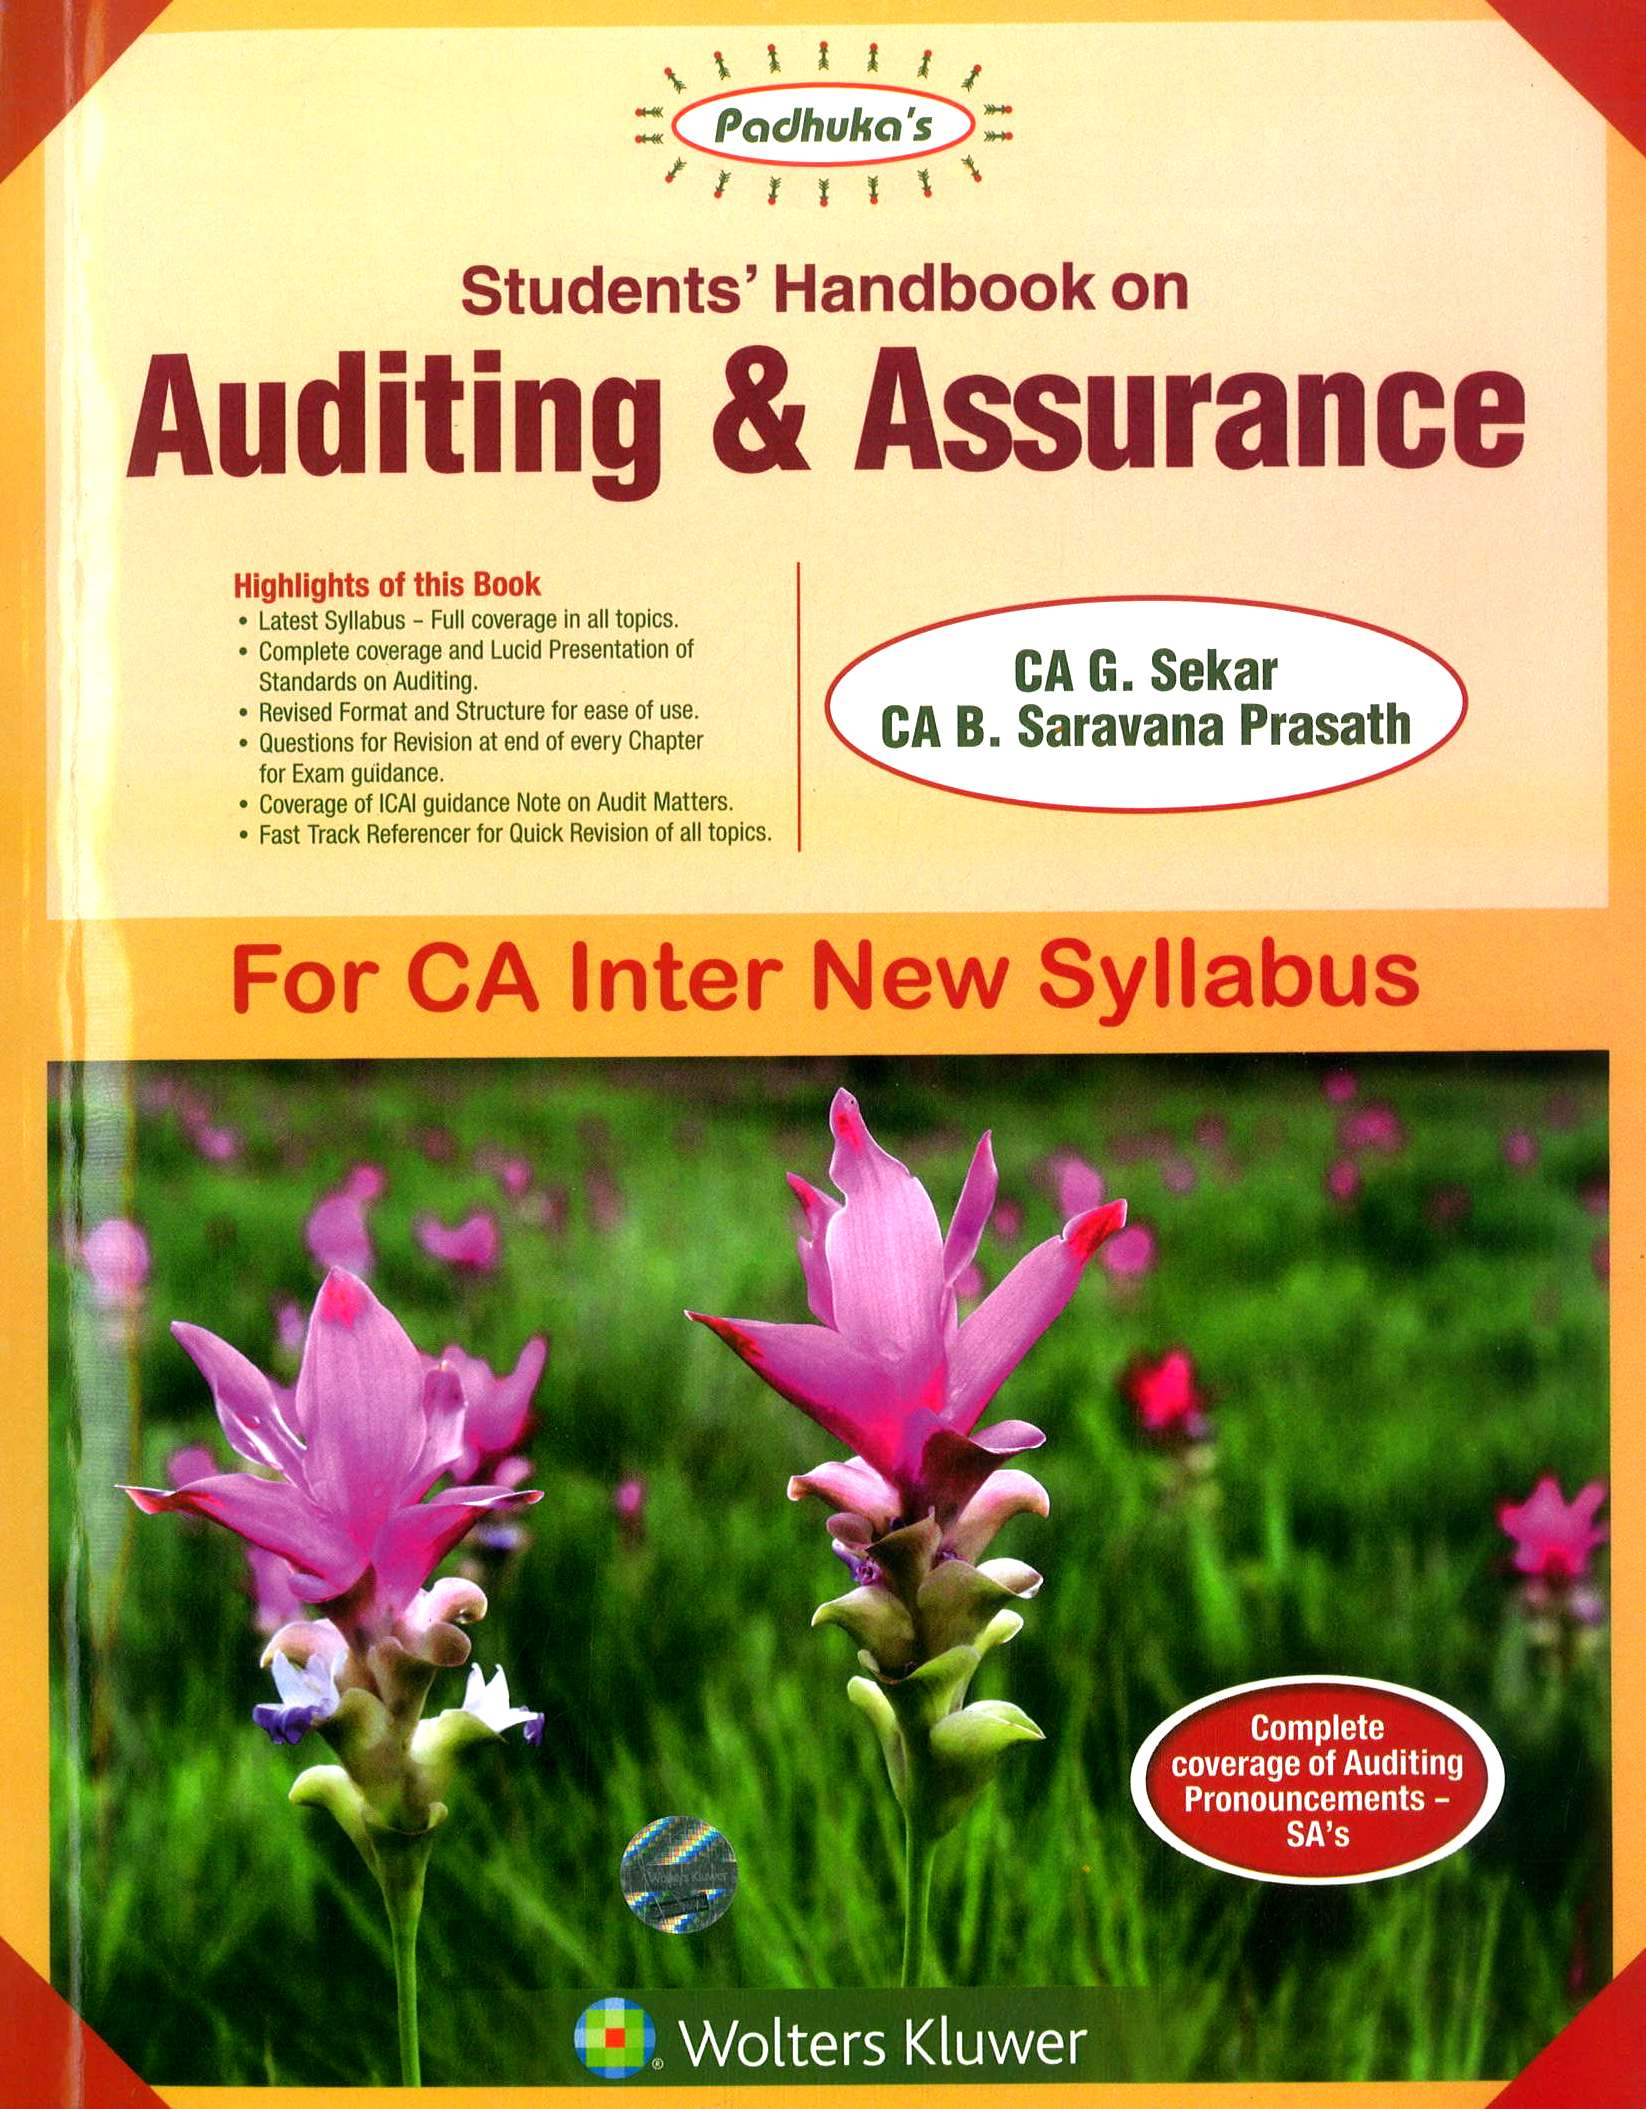 Padhuka's Students Handbook on Auditing & Assurance for CA Inter New Syllabus by G Sekar and Saravana Prasath Applicable for Nov 2018 Exams